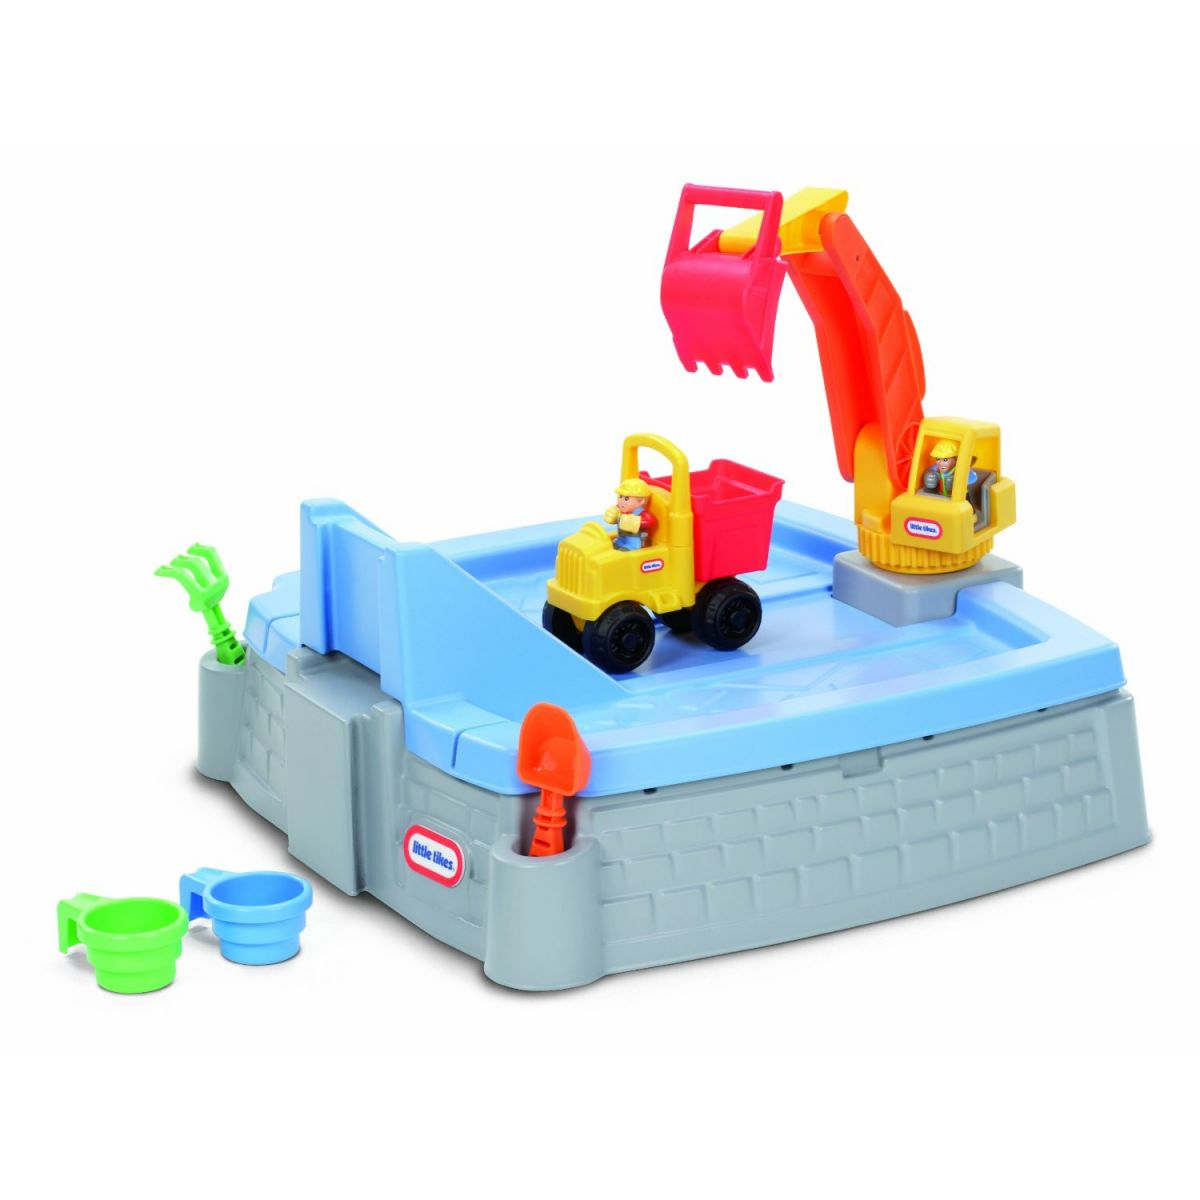 Outdoor Construction Toys : Outdoor construction toys xxx porn library